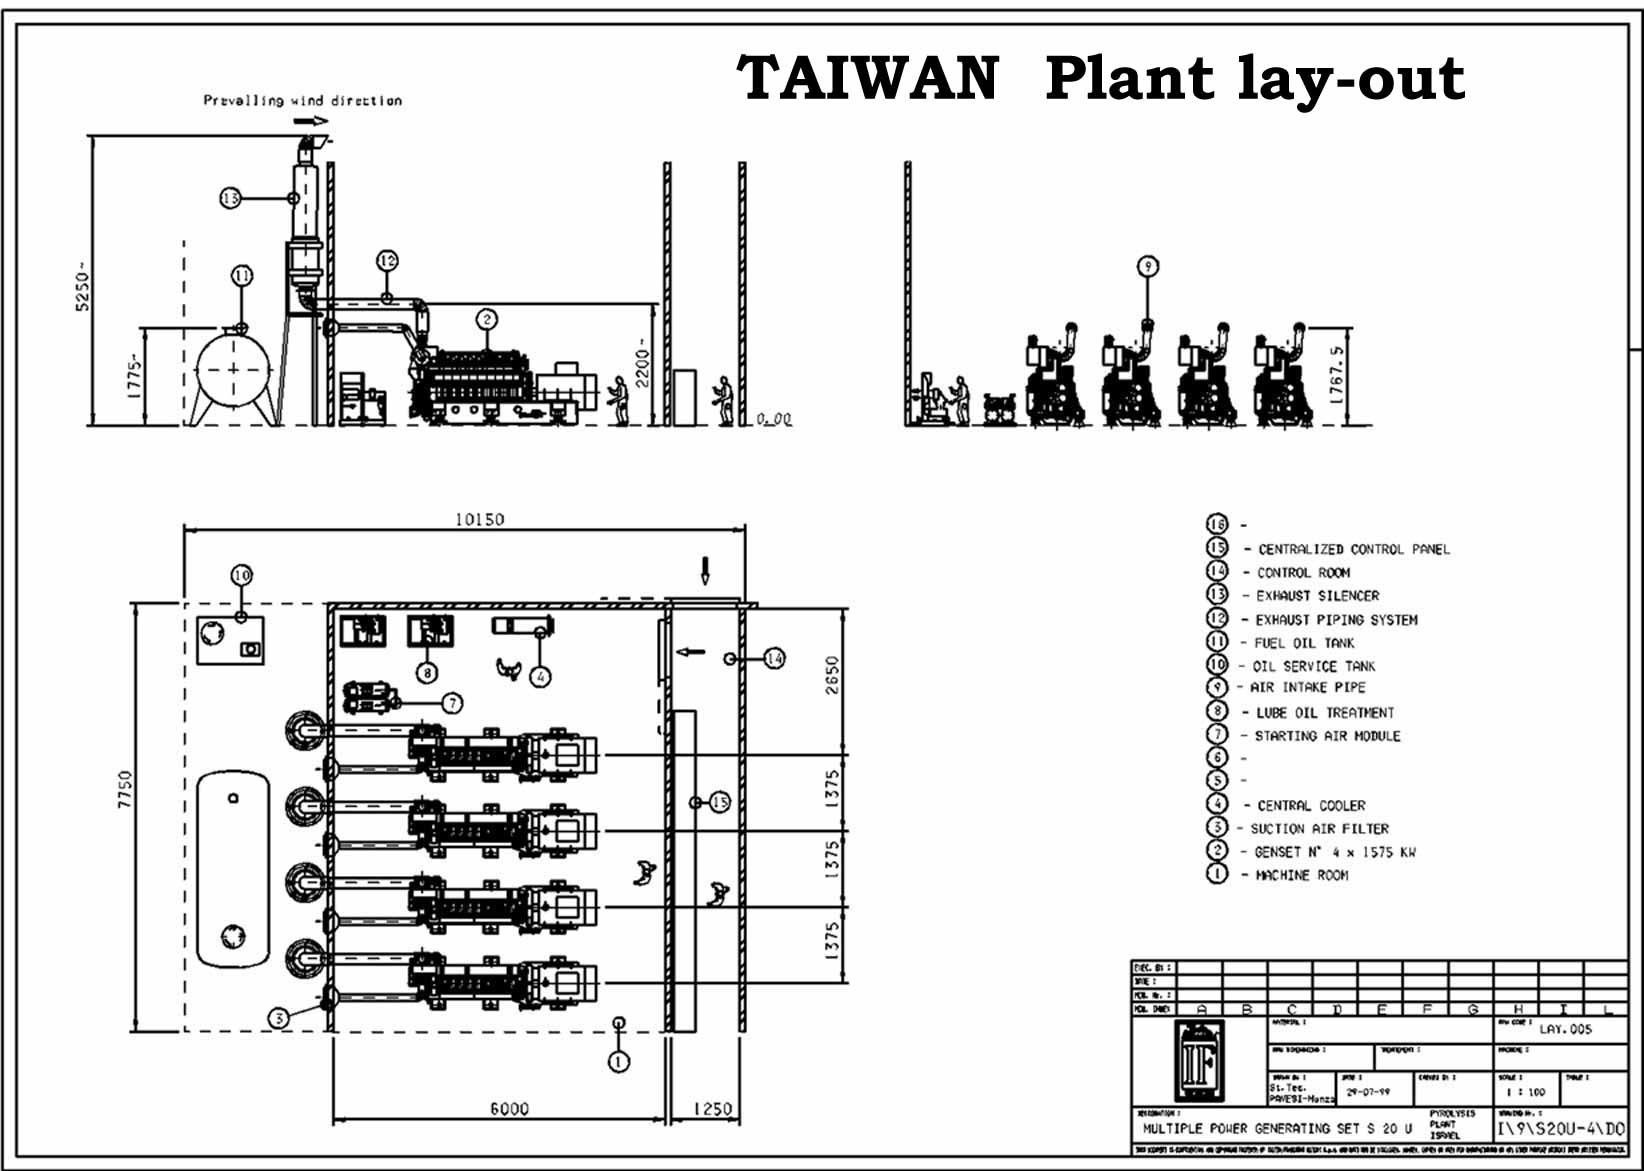 Pyrolysis Combustion Proces Giorgio Comerio Diesel Generator Power Plant Diagram Taiwan Lay Out